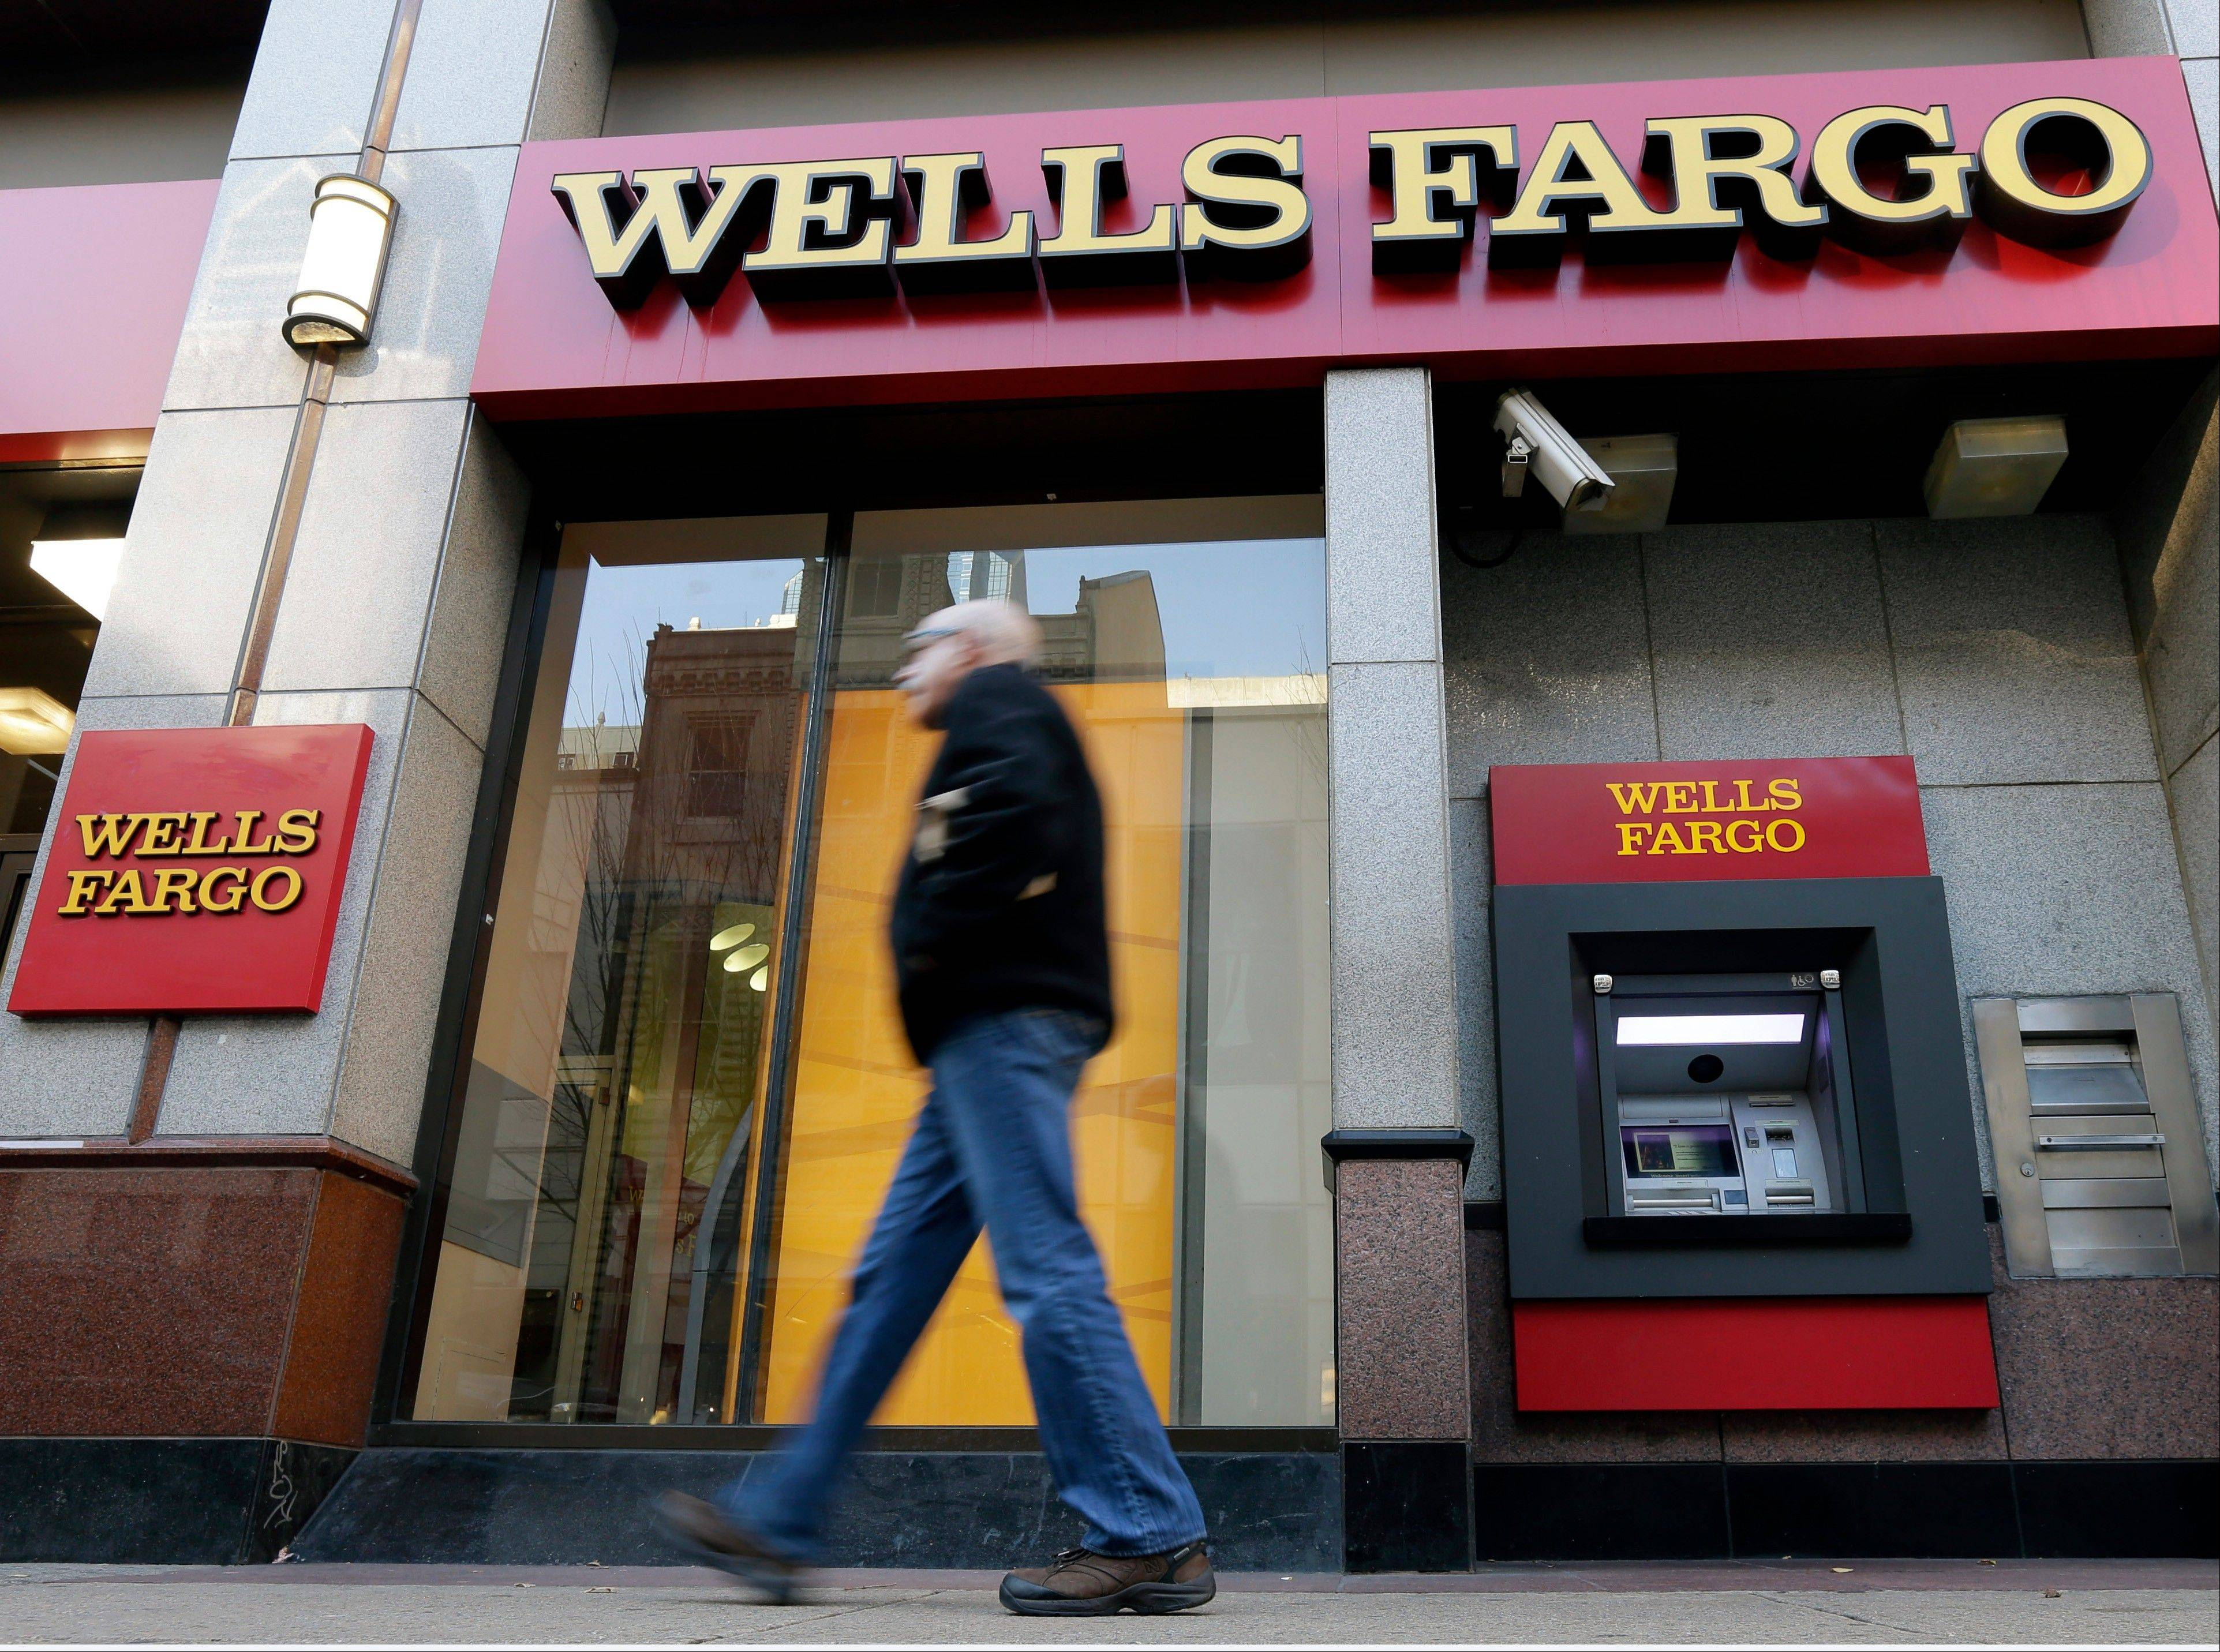 Wells Fargo, the biggest U.S. mortgage lender, says it earned a record $4.9 billion in the fourth quarter, up 25 percent from the same period a year before. Revenue rose 7 percent, to $21.9 billion, beating the $21.3 billion expected by analysts polled by FactSet.